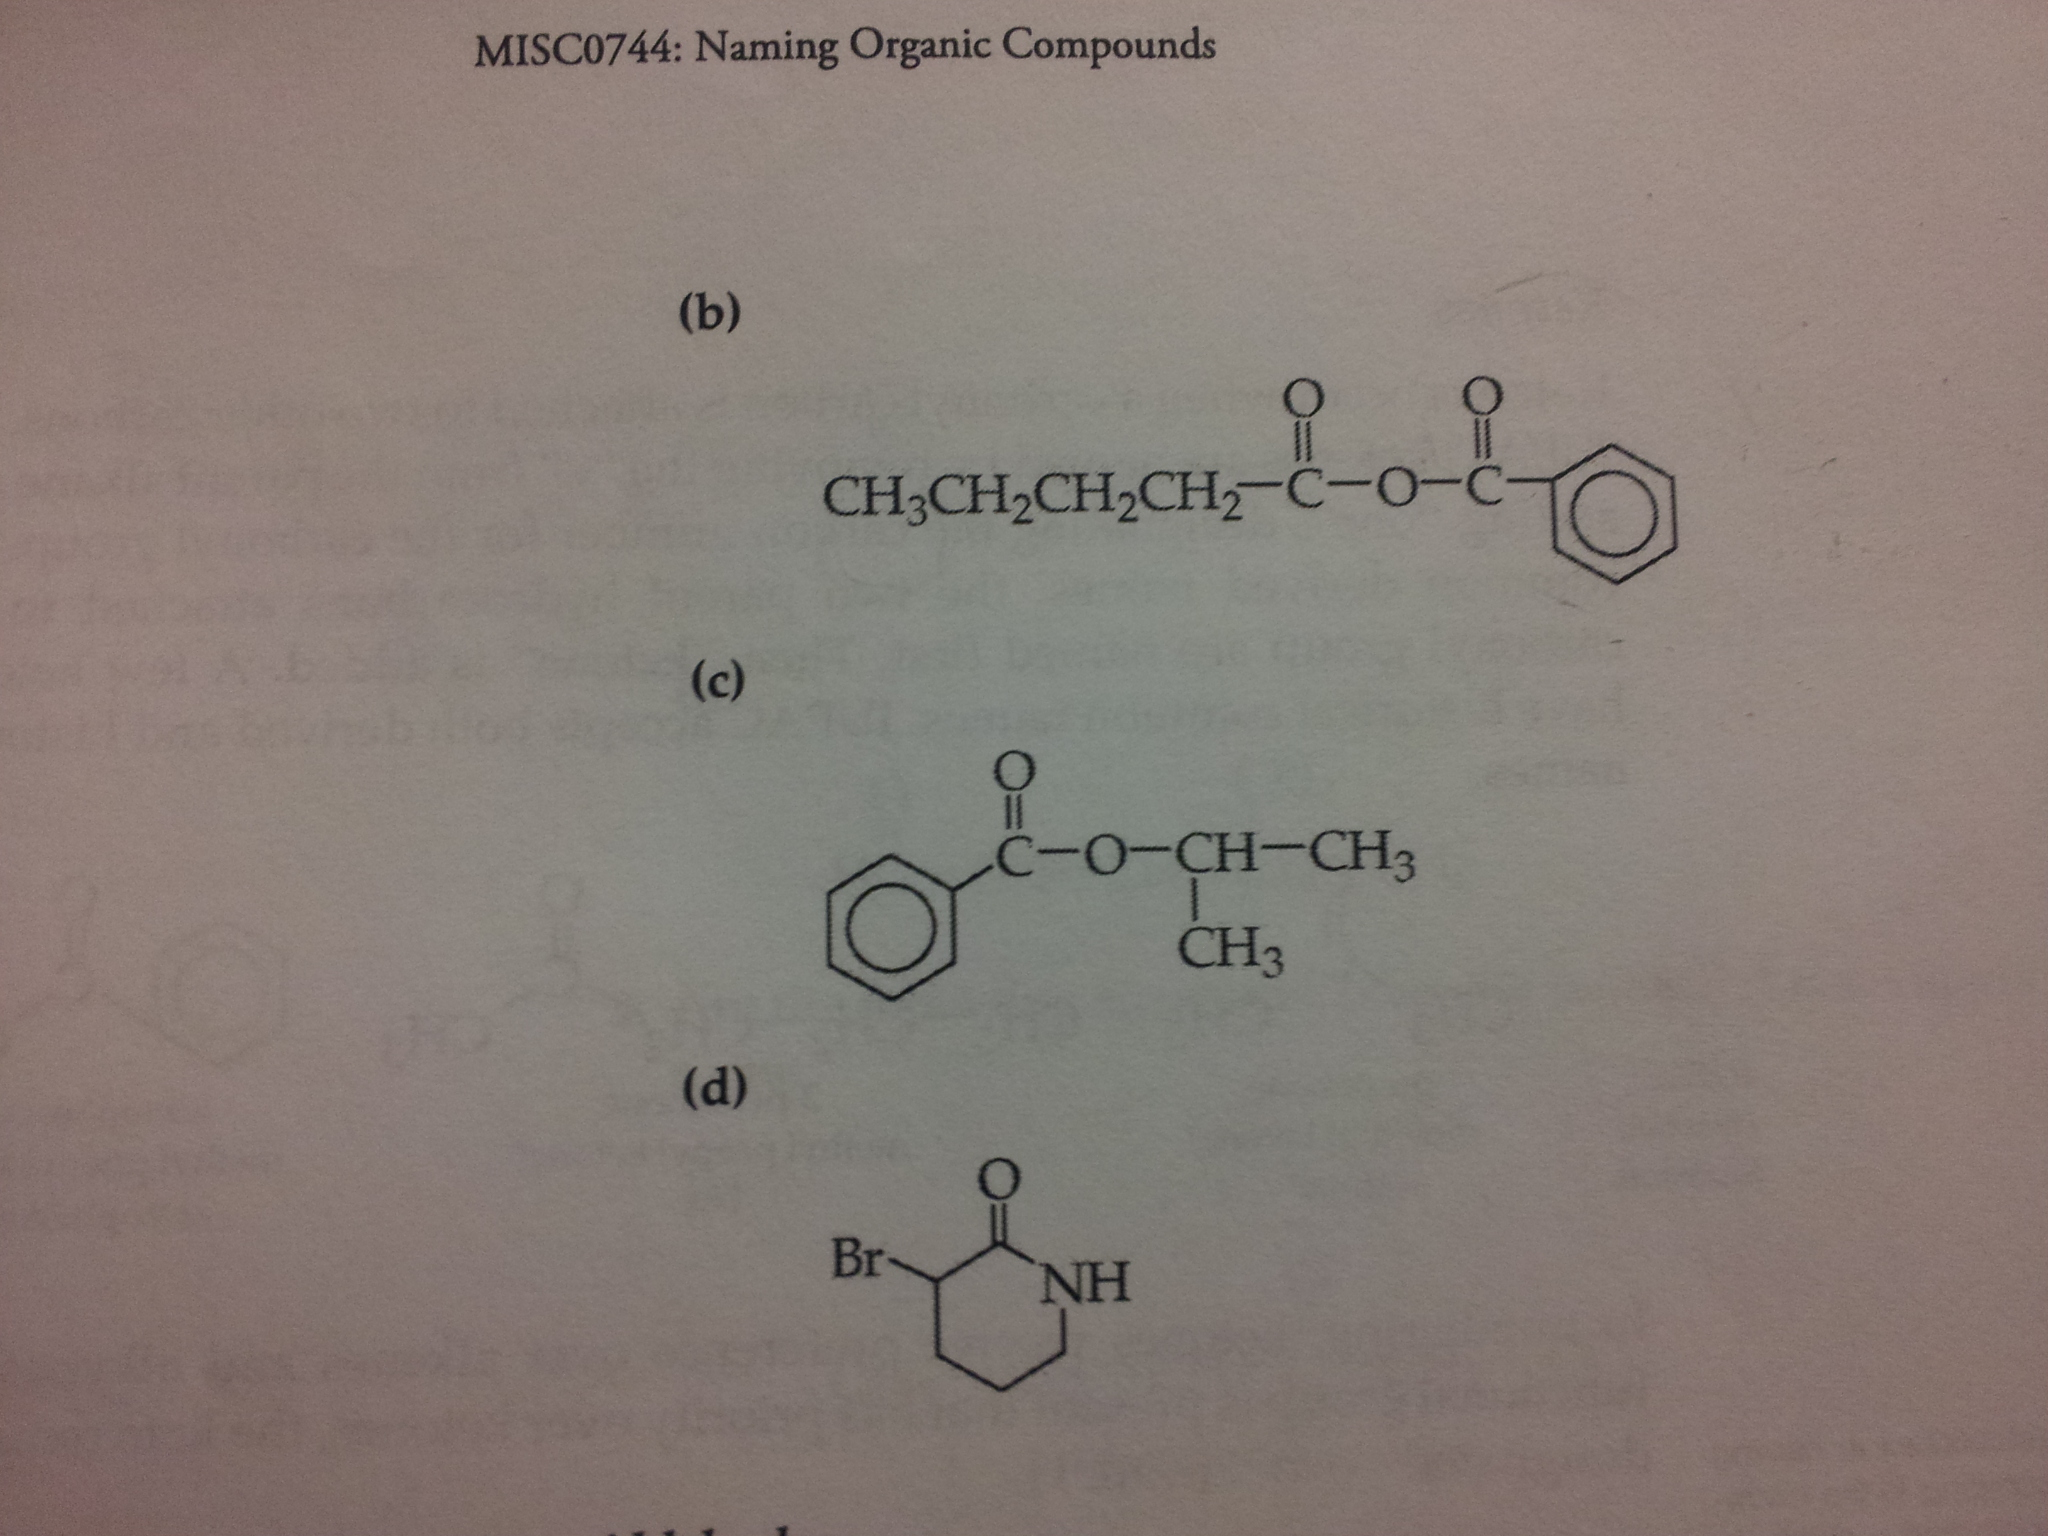 MISC0744: Naming Organic Compounds